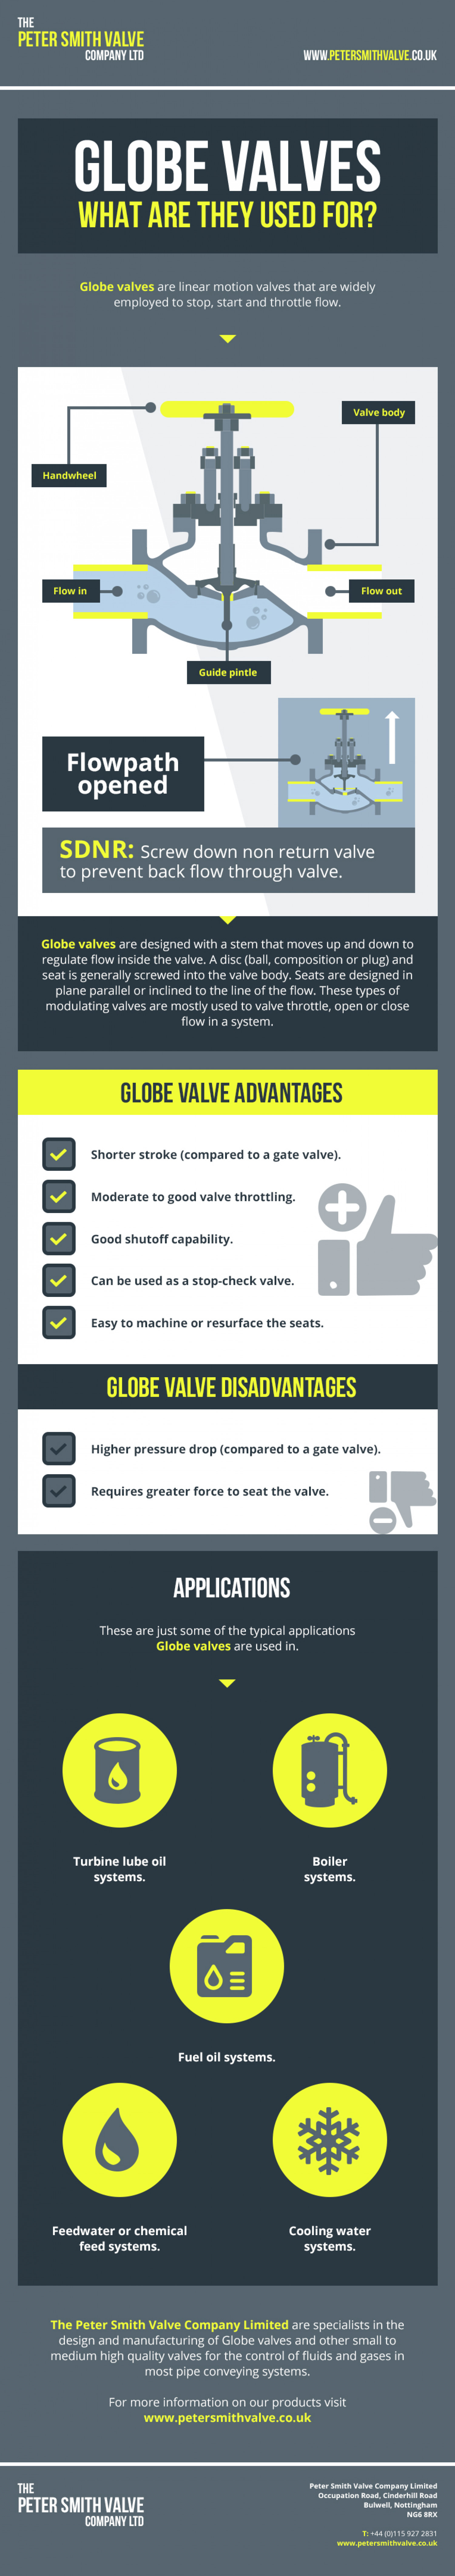 Globe Valves: What Are They Used For? Infographic